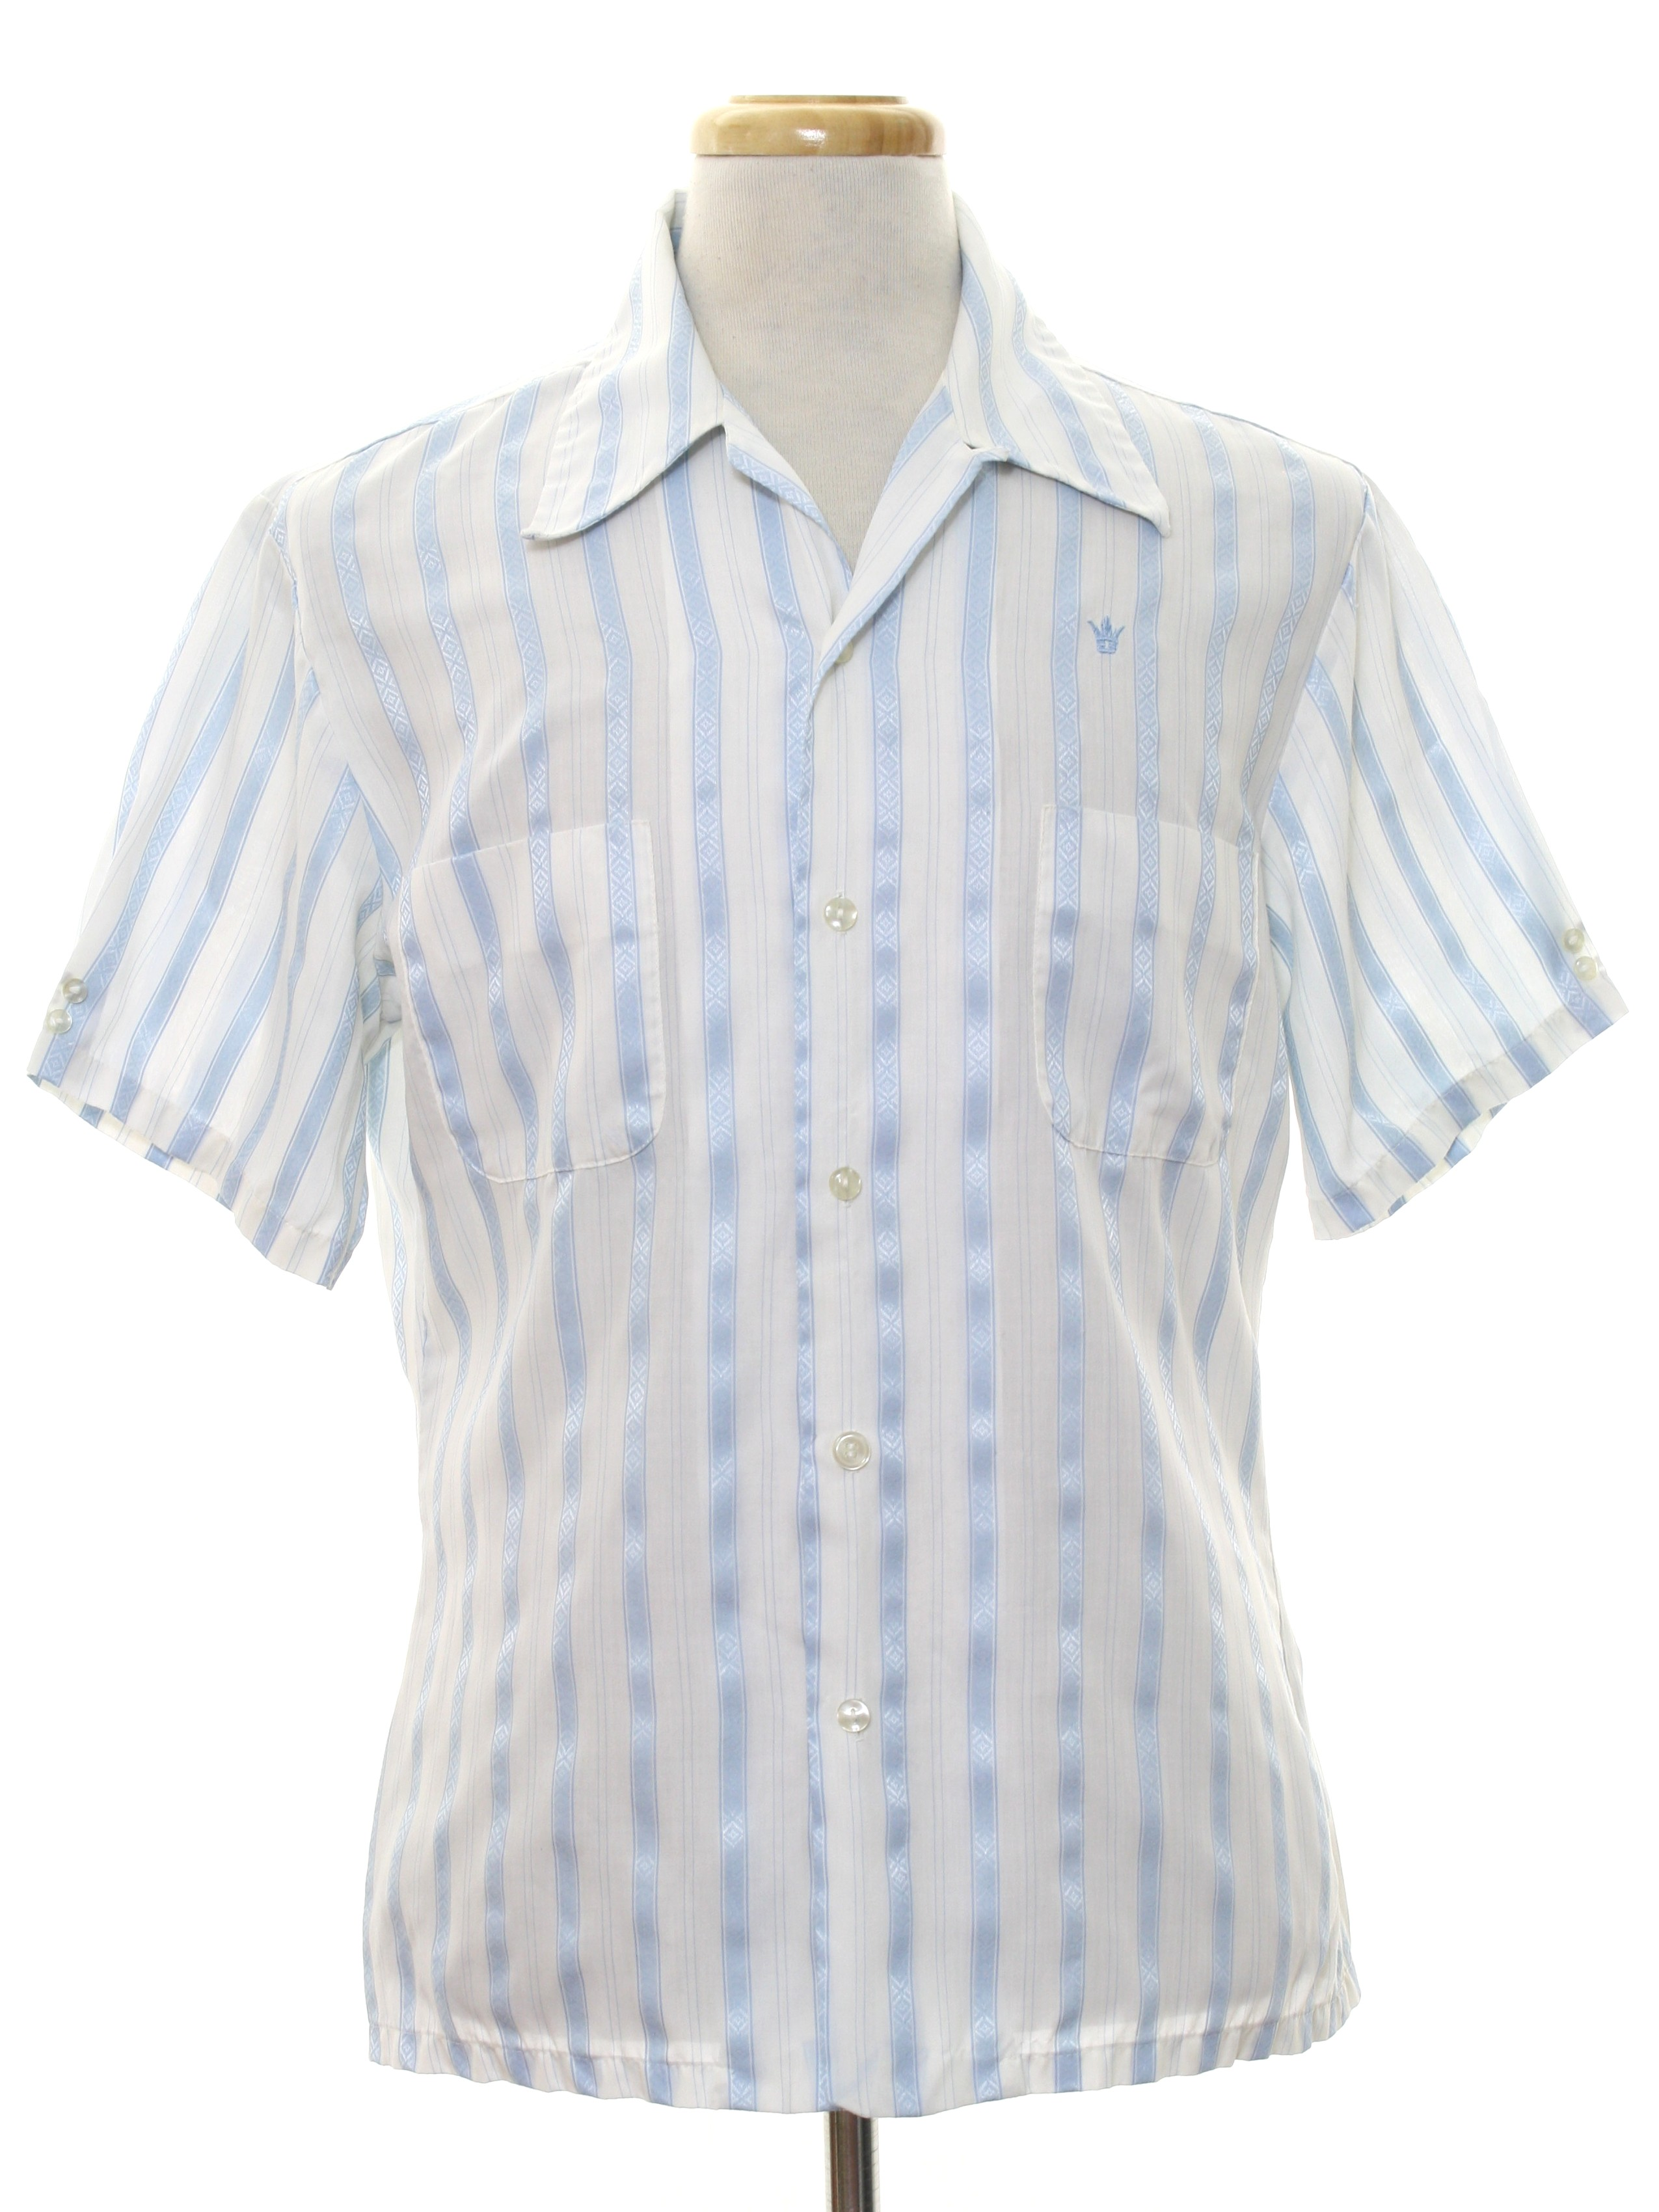 59fd442a76c Patterned Short Sleeve Button Up Shirts